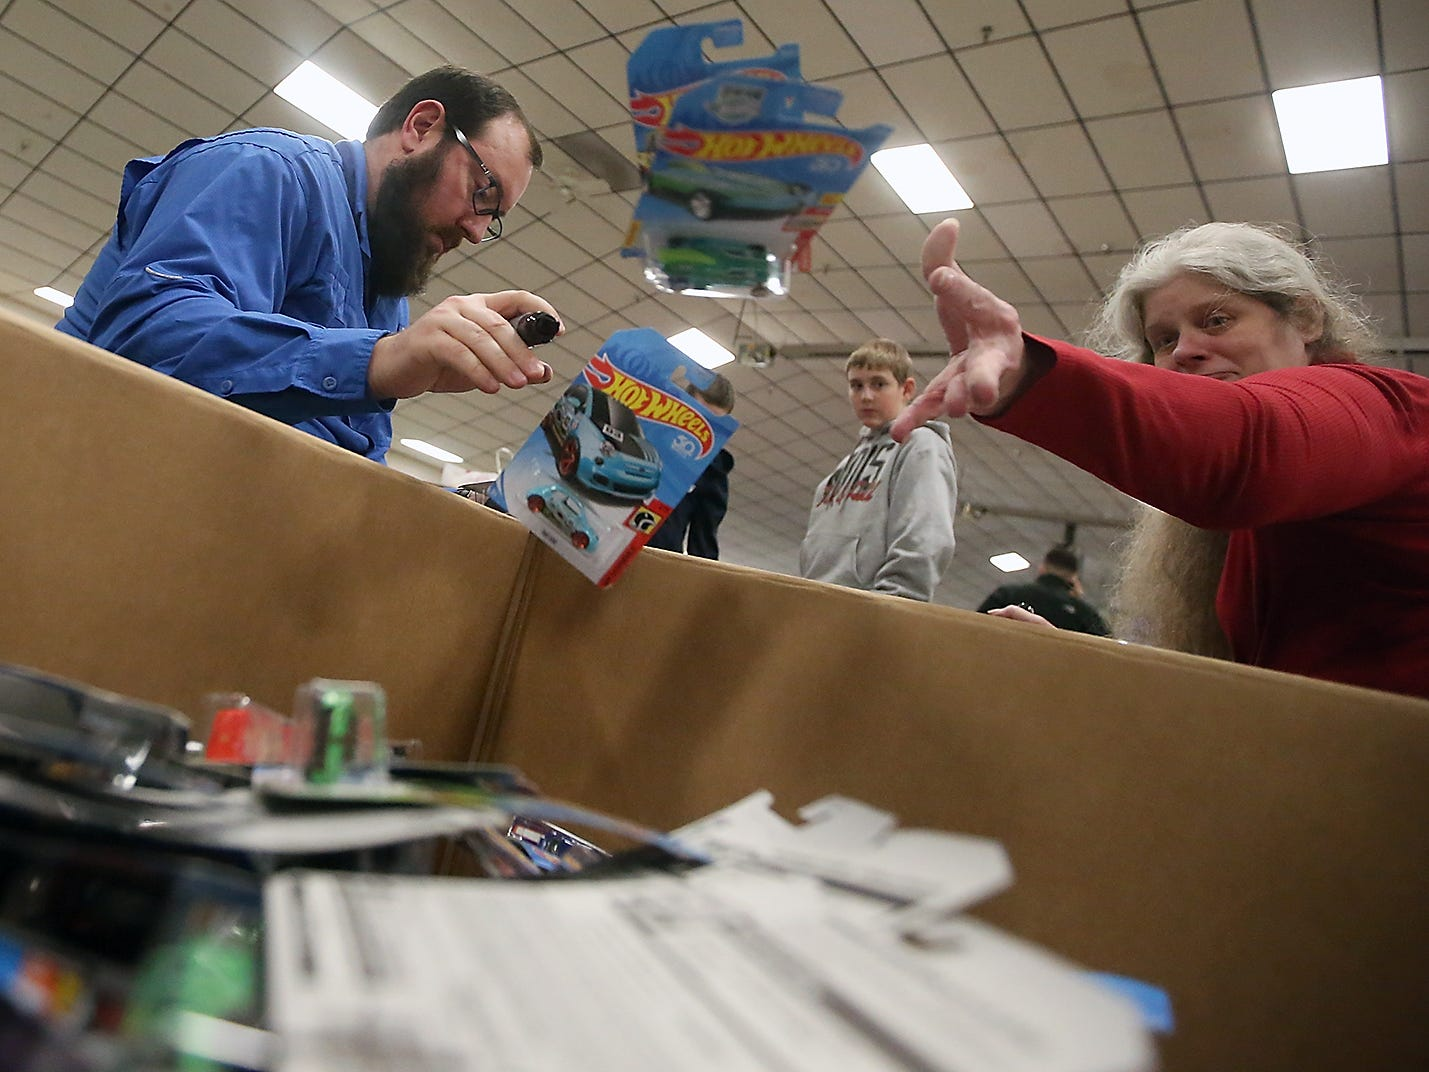 Volunteers Jared Kelly and Kathy Owen toss Hot Wheels cars into a box as they sort and mark donations for the upcoming Toys For Tots event in President's Hall at the Kitsap County Fairgrounds on Tuesday, December 11, 2018.